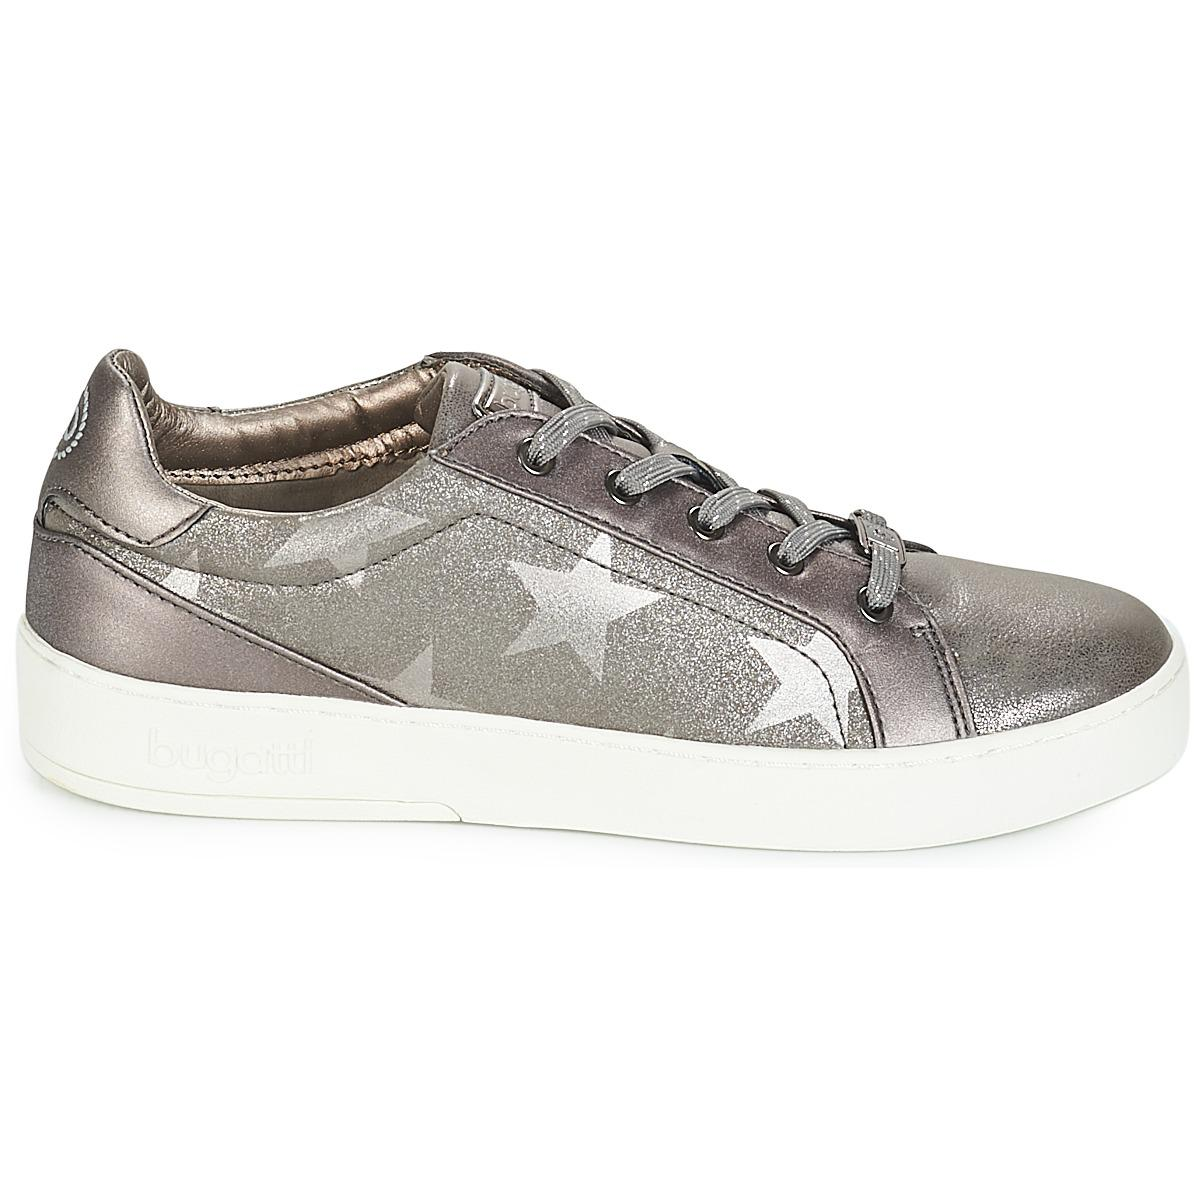 Bugatti Pego Women s Shoes (trainers) In Grey in Gray - Lyst 4f76b0d07c